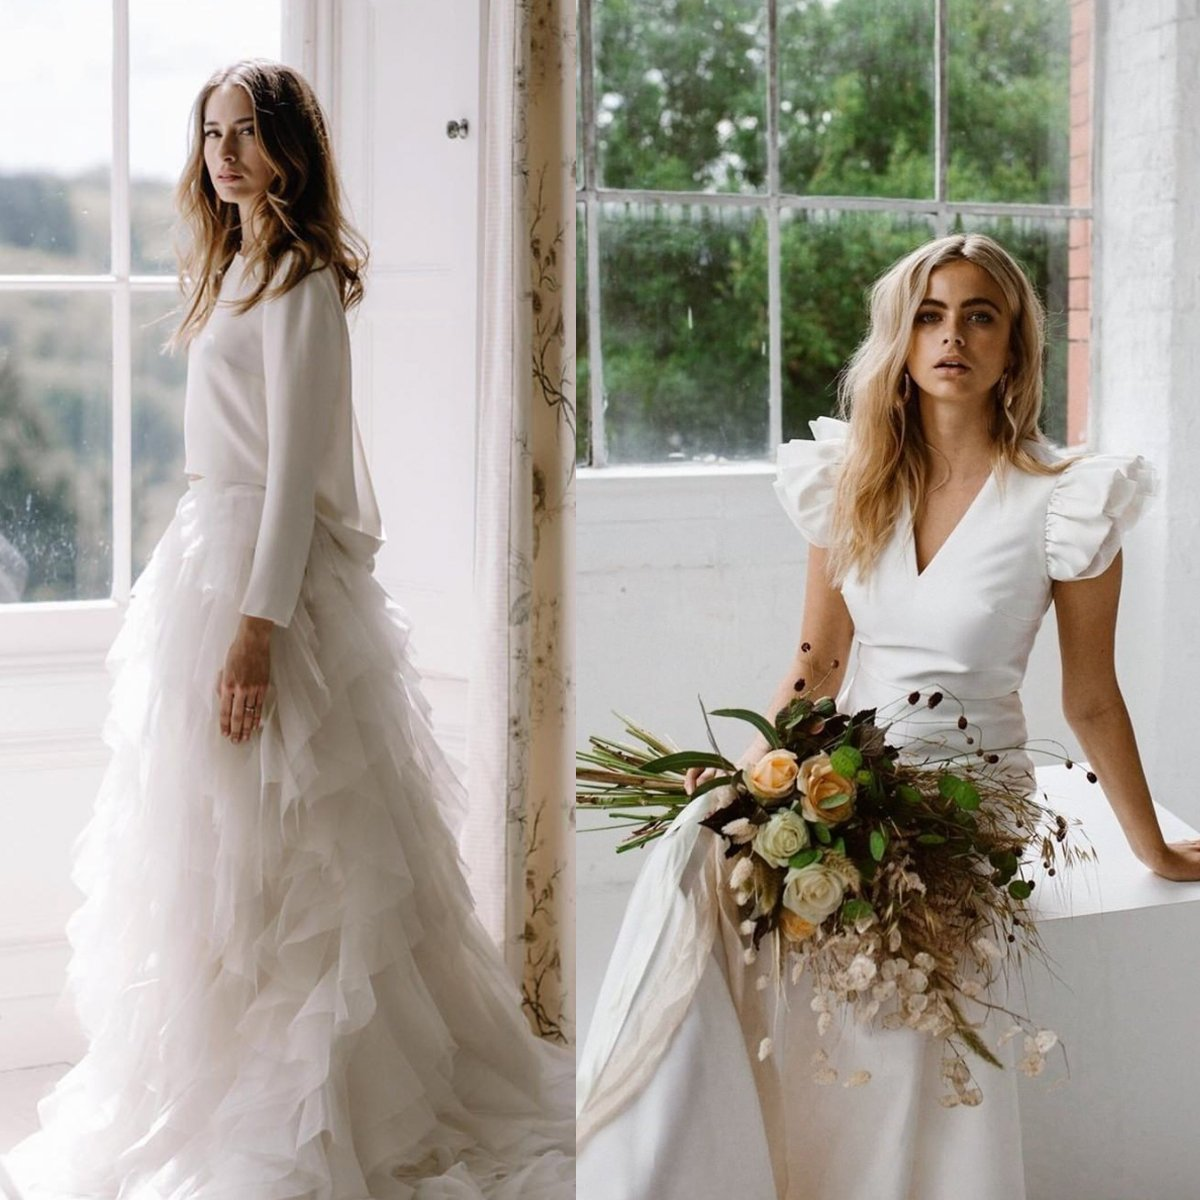 Bridal Trends 2020.Wedding Trends 2020 Sustainability And Individuality